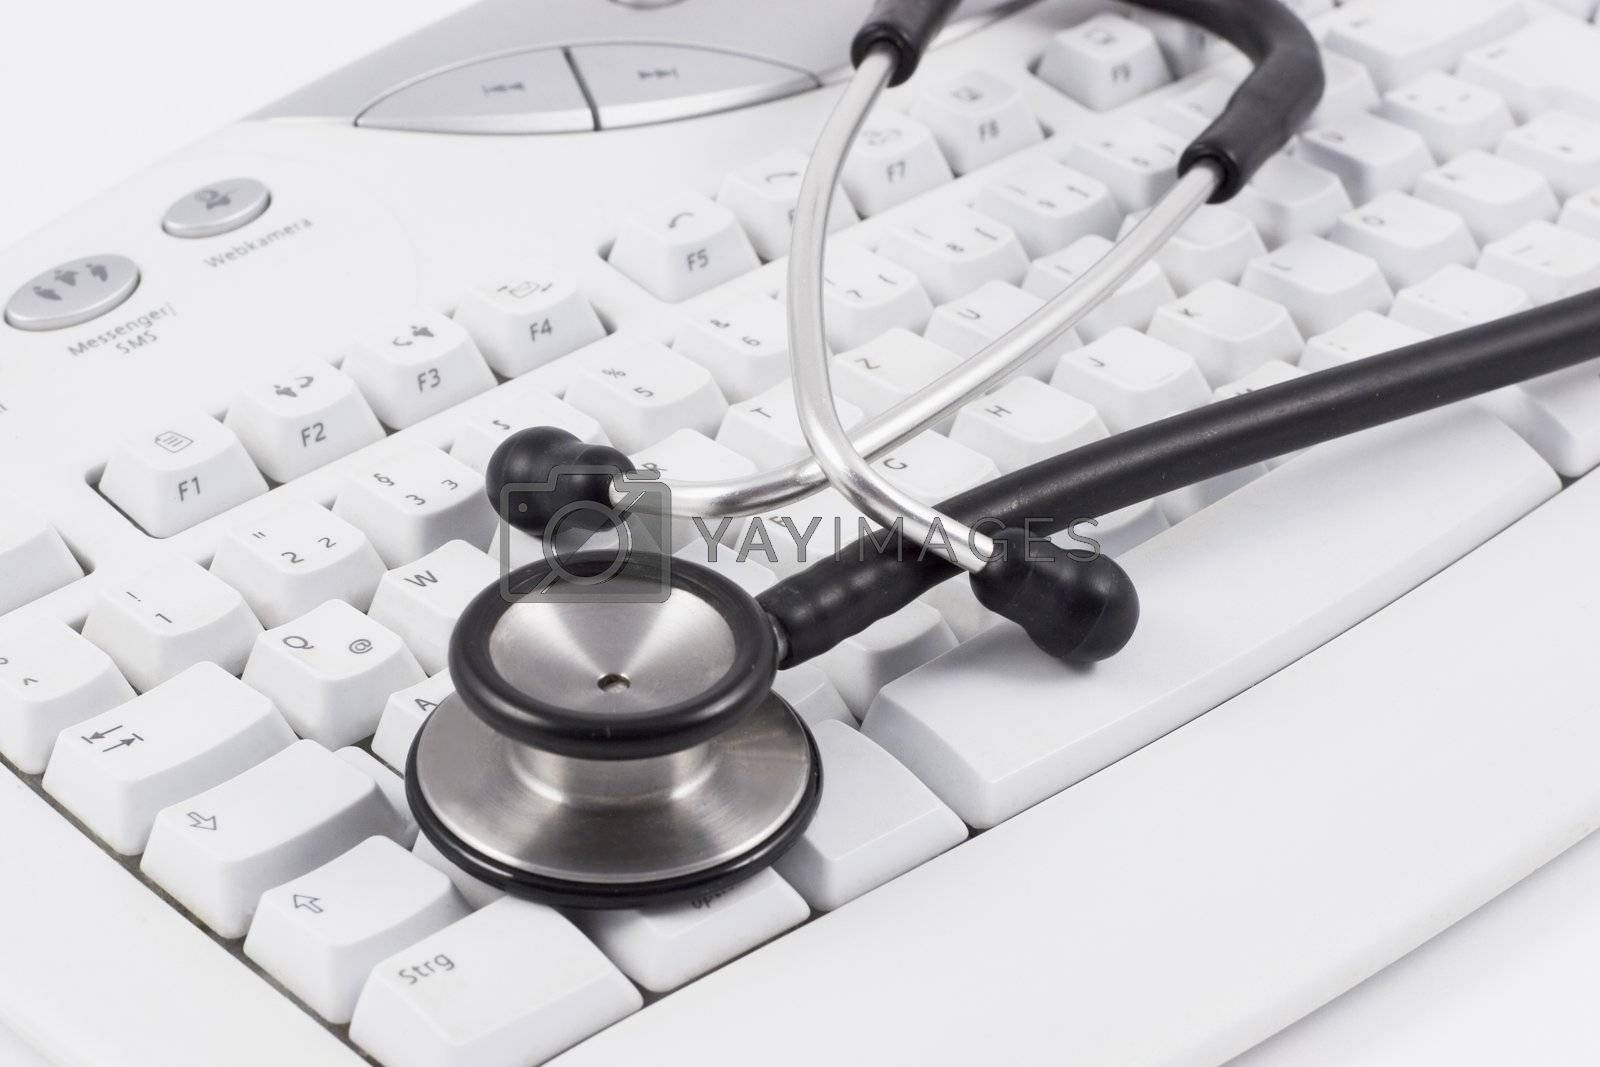 Stethoscope on white computer keyboard by ArtmannWitte